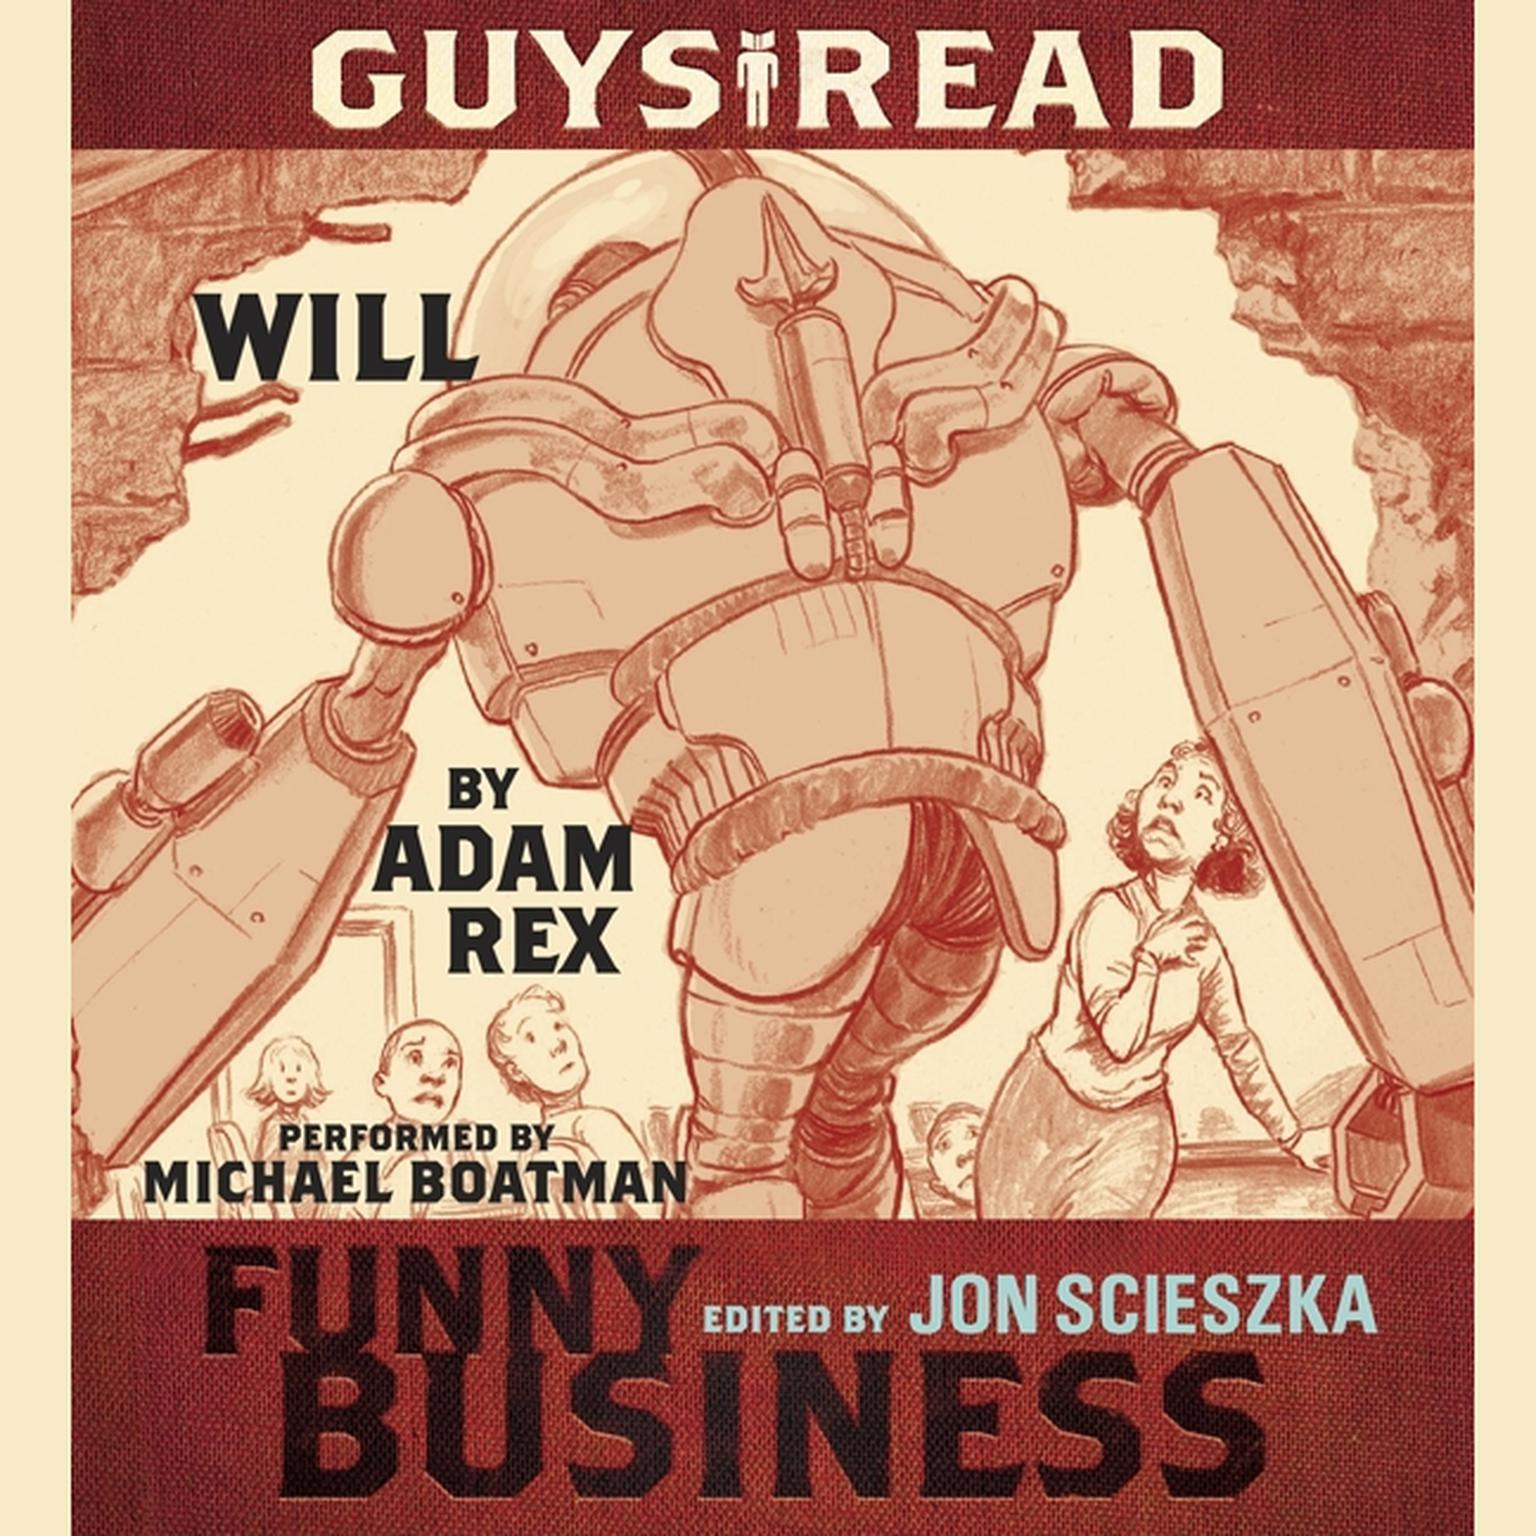 Printable Guys Read: Will: A Story from Guys Read: Funny Business Audiobook Cover Art